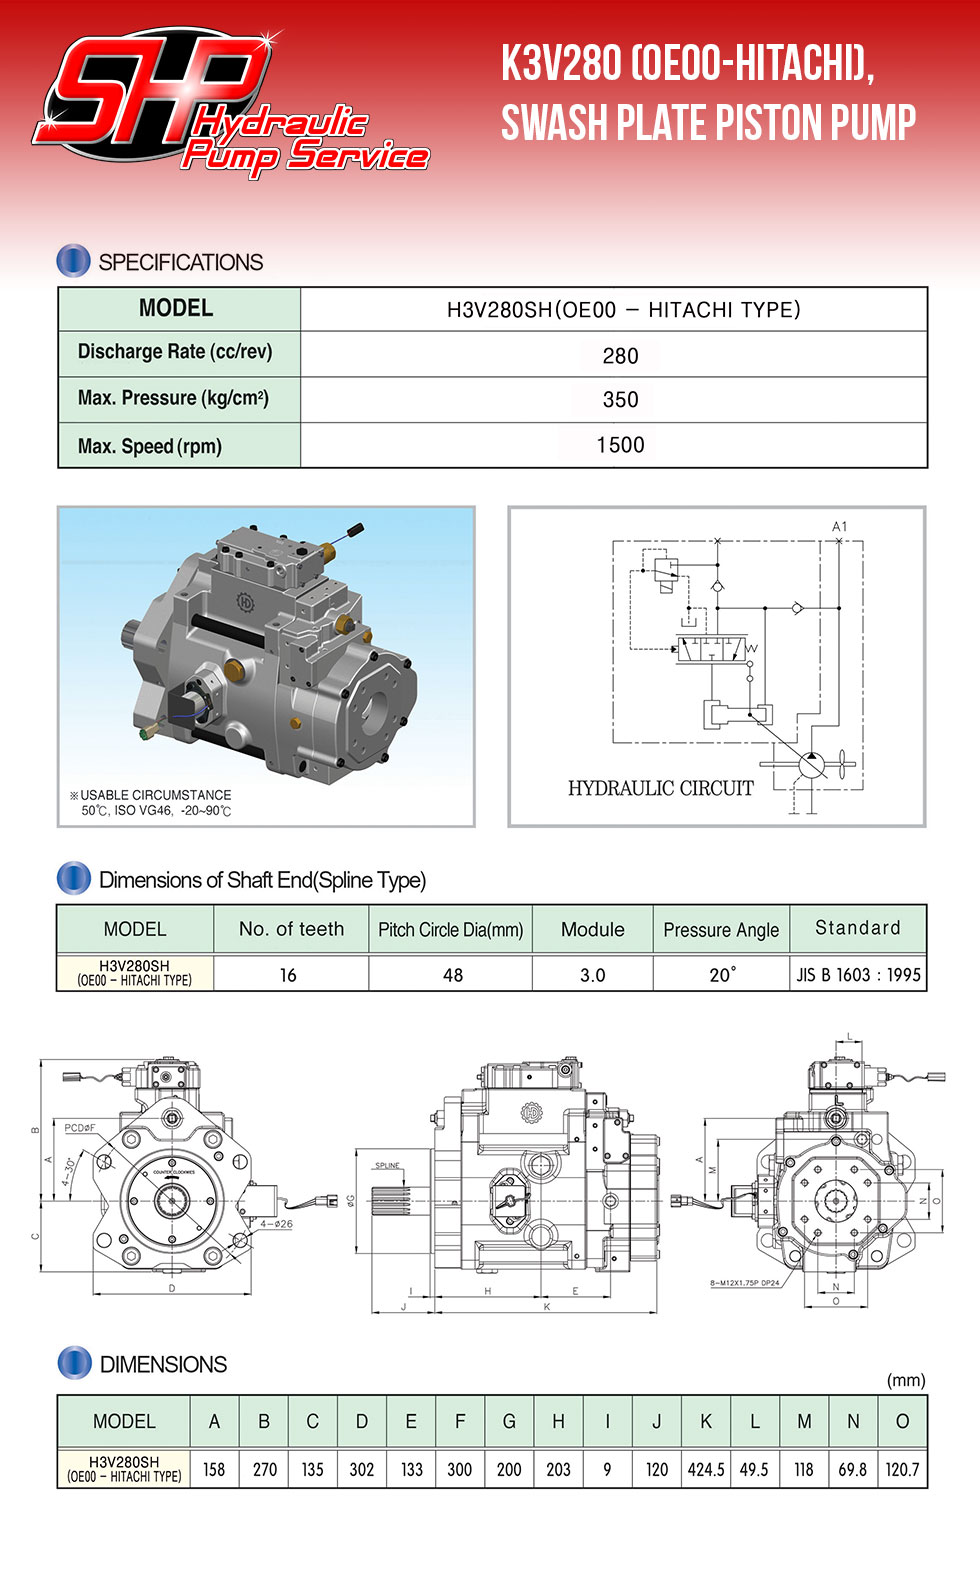 K3V280 (OE00-Hitachi), Swash Plate Type Piston Pump